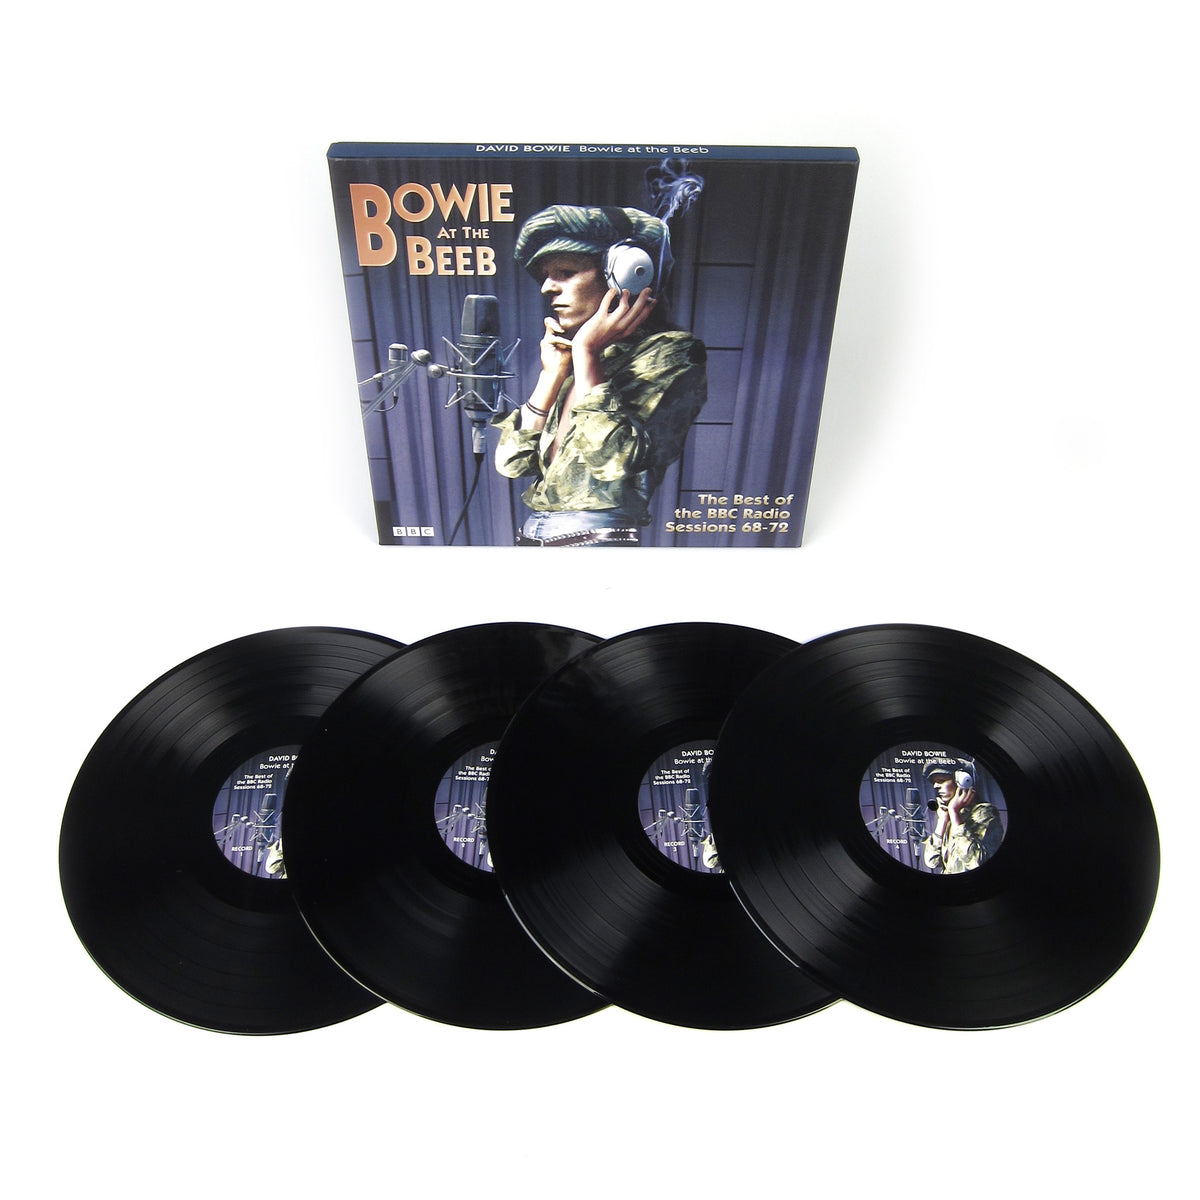 David Bowie: Bowie At The Beeb - The Best Of The BBC Radio Sessions '68-'72 (180g) Vinyl 4LP Boxset